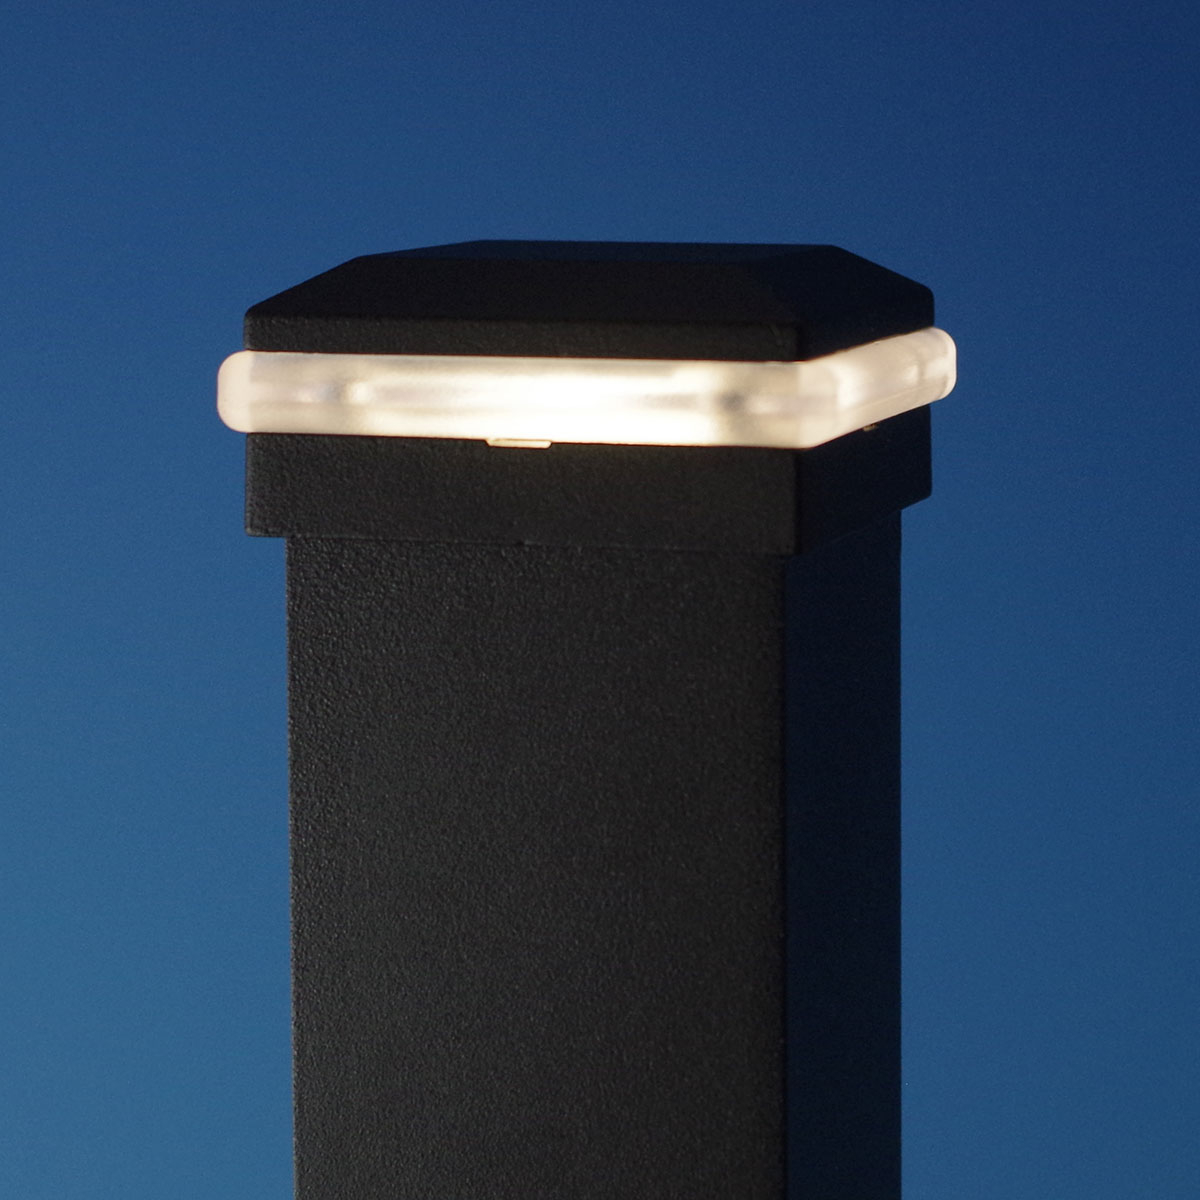 Signature LED Post Cap Light By Trex Lighting